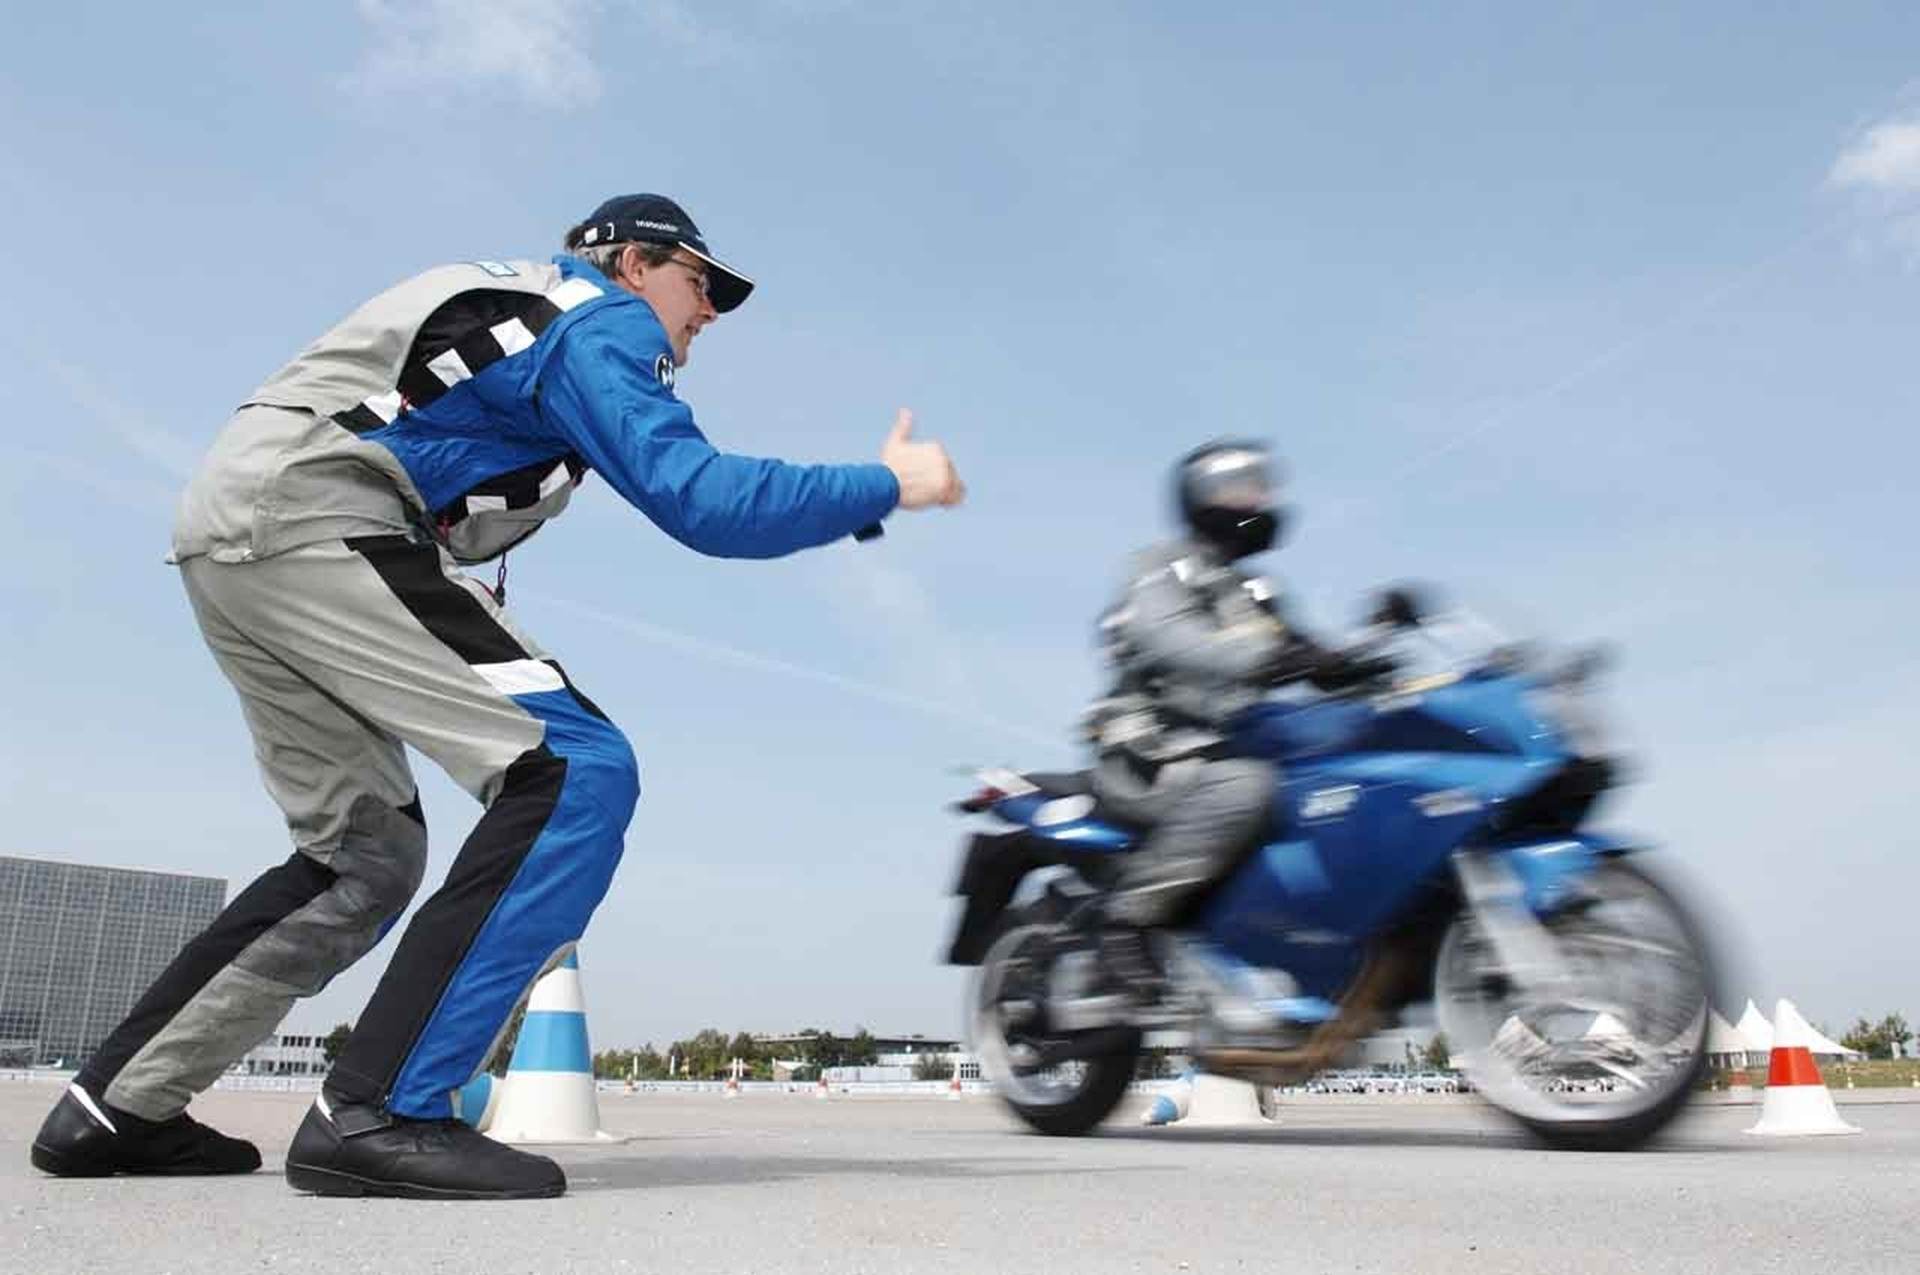 BMW Motorcycles Training